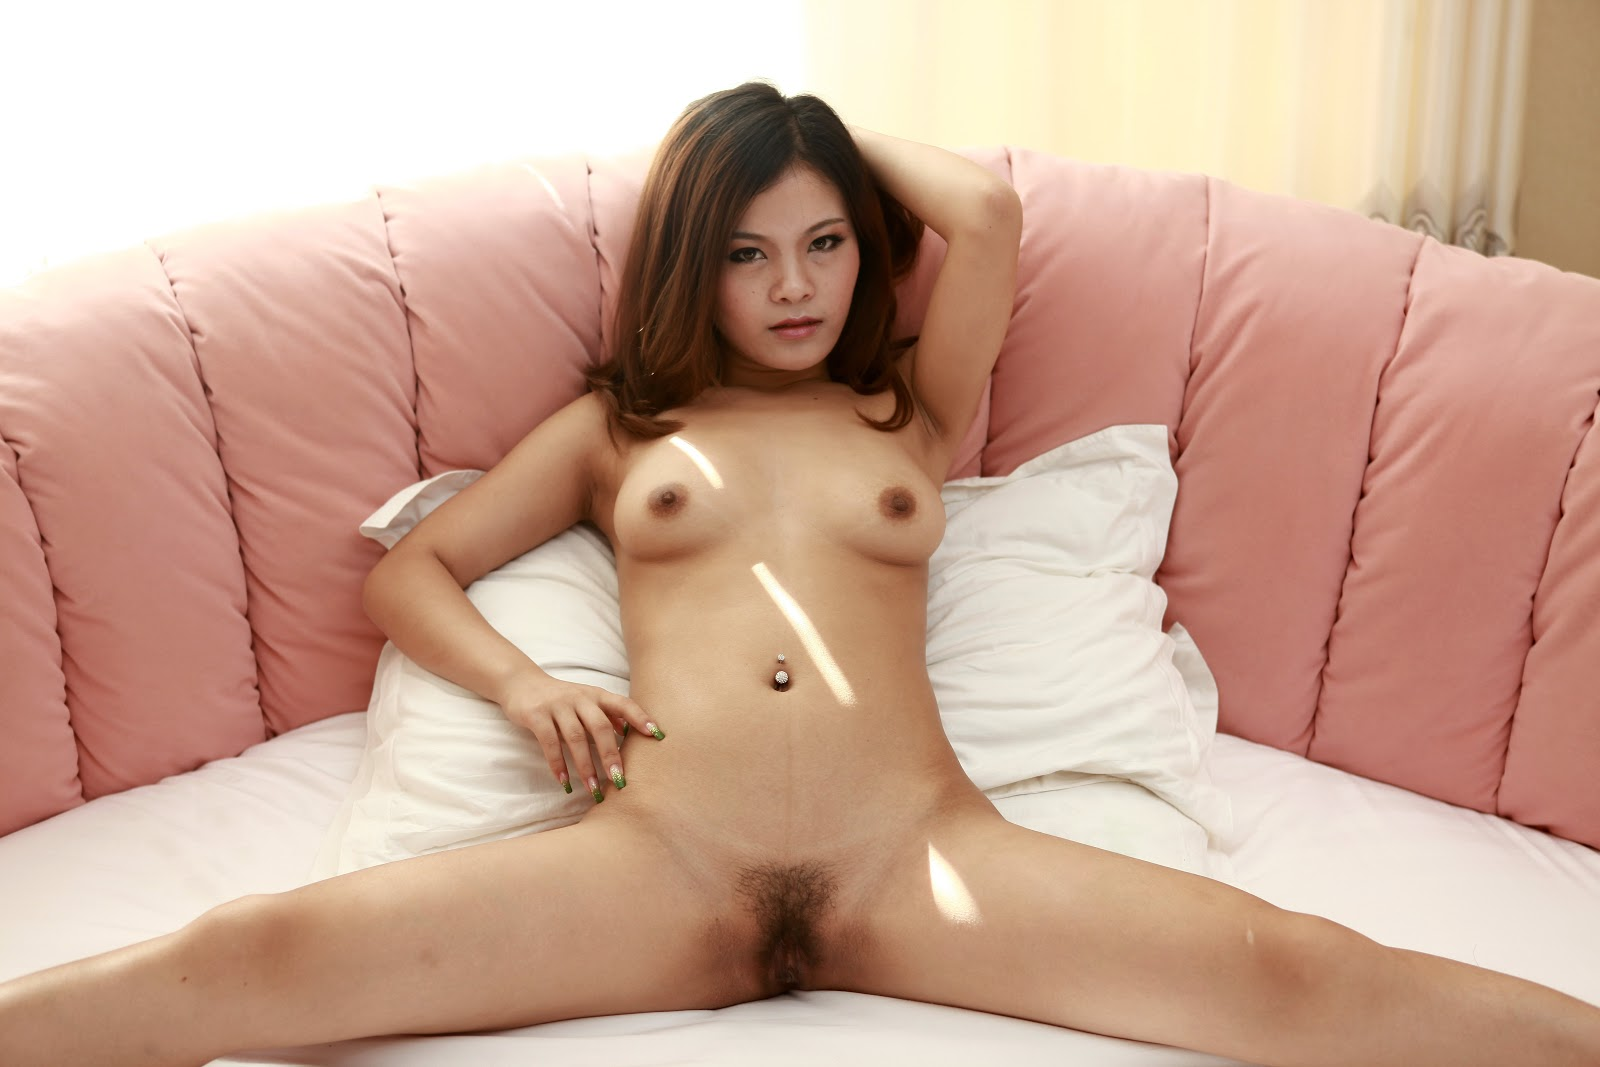 Chinese Nude_Art_Photos_-_260_-_YangYang_Vol_9.rar Chinese_Nude_Art_Photos_-_260_-_YangYang_Vol_9.rar.IMG_7487